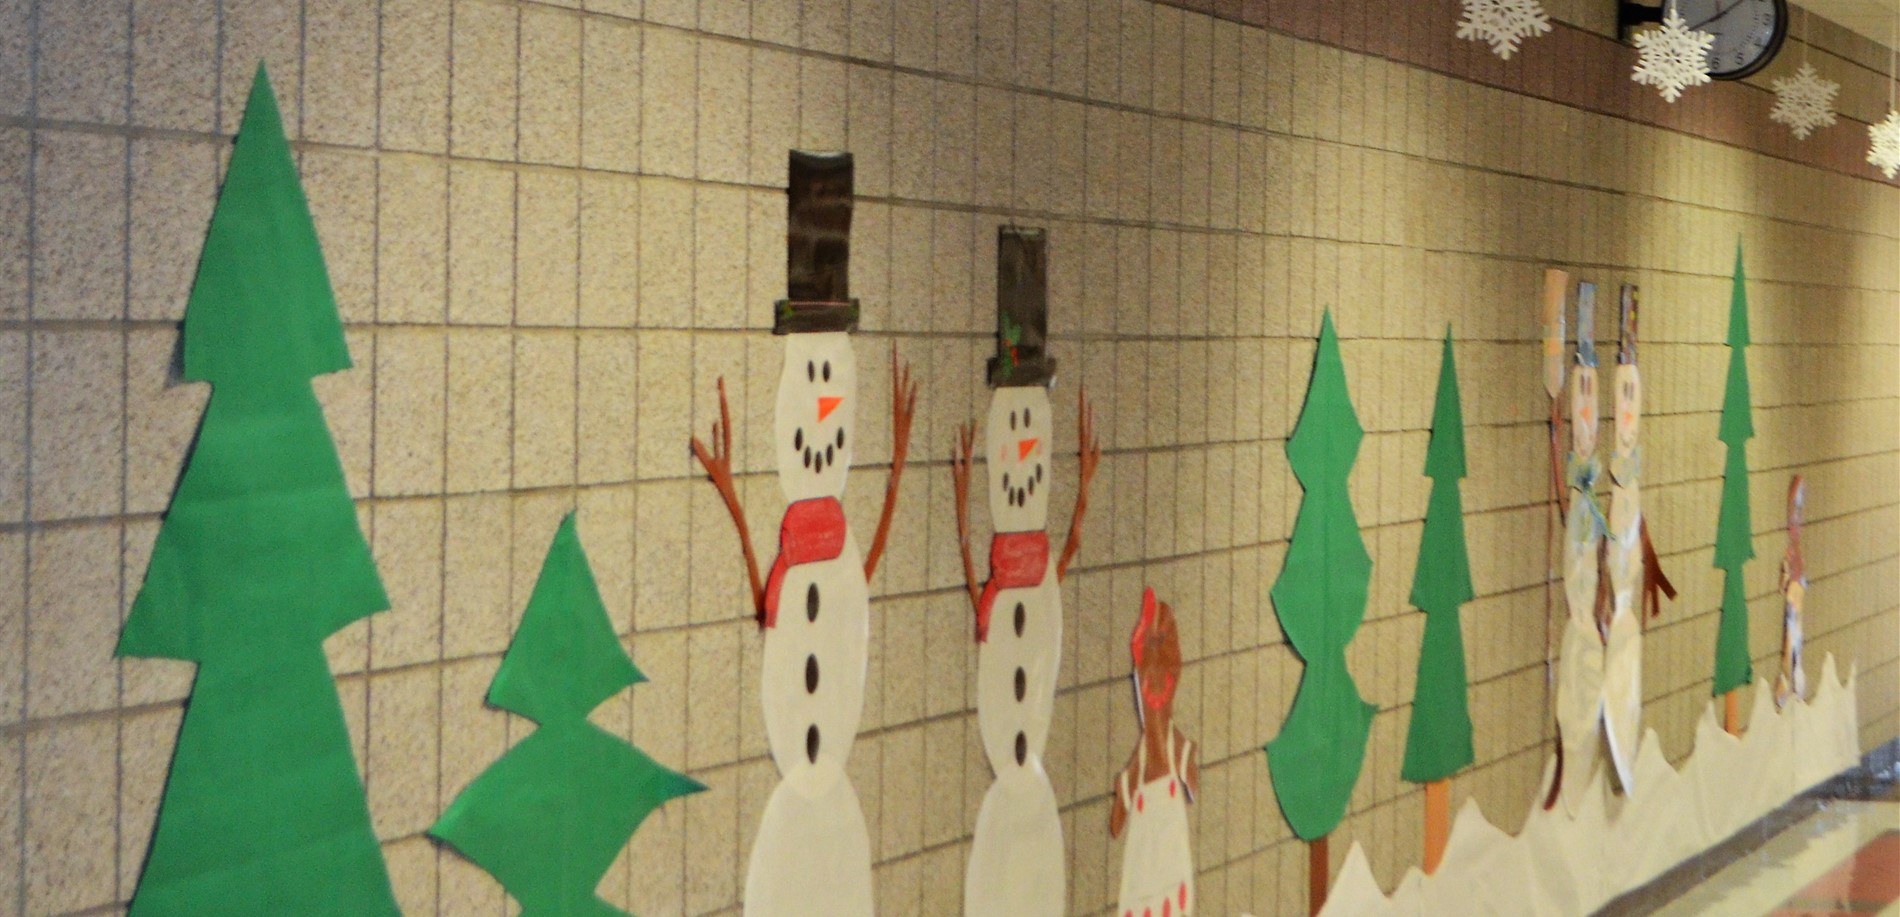 The halls of Heartland Elementary are truly ready for winter.